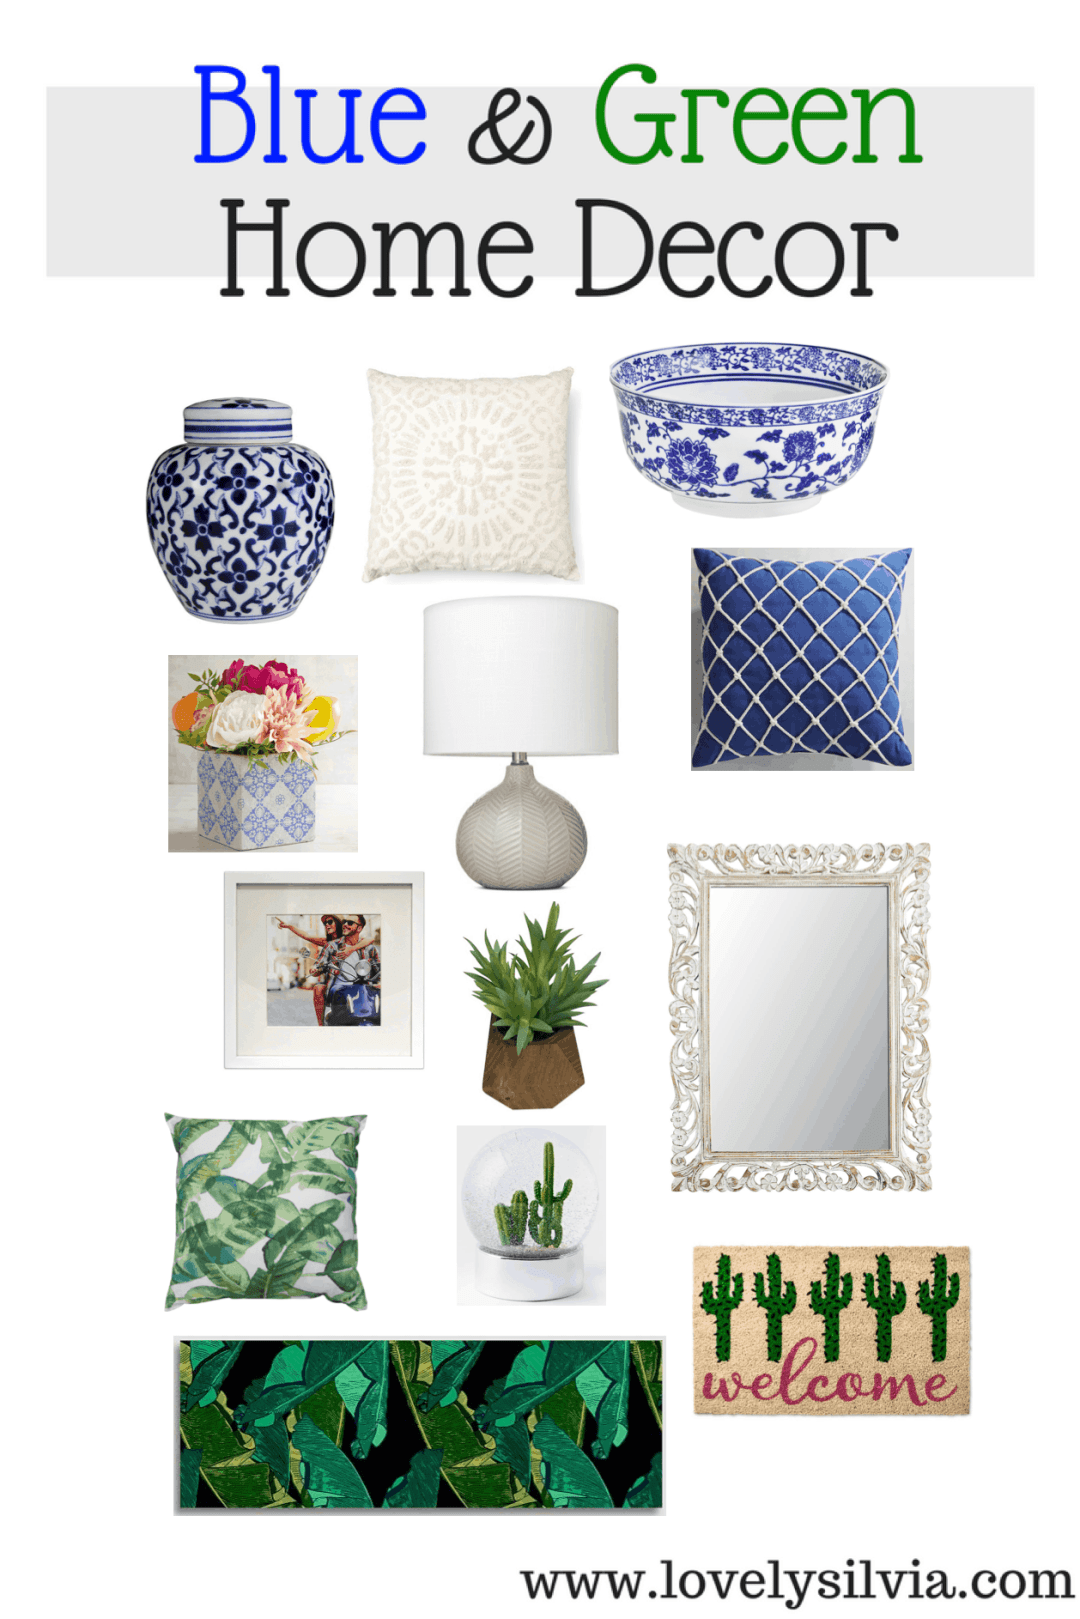 blue and green, home decor, home inspiration, green home decor, blue home decor, white home decor, target home decor, pier1 home decor, west elm home decor